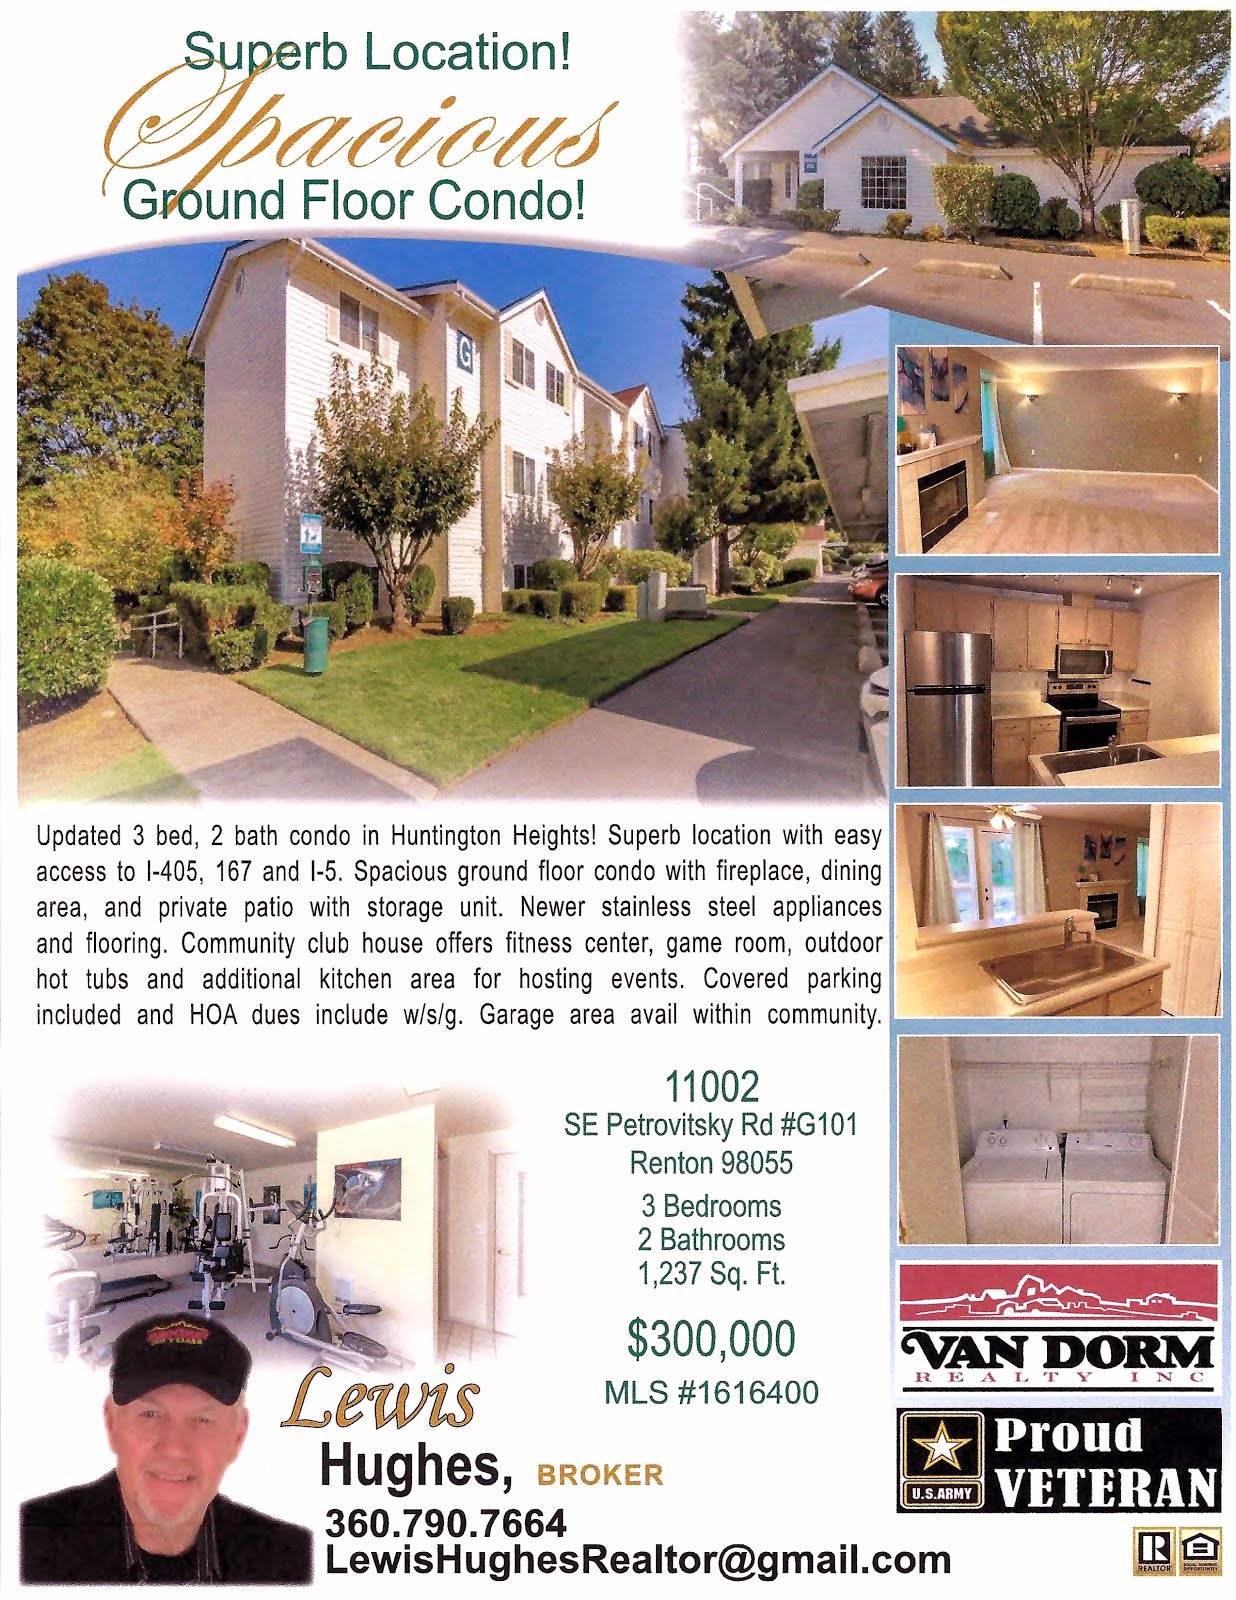 Here's My Newest Listing!! Spacious Huntington Heights Ground Floor Condo in Renton, WA